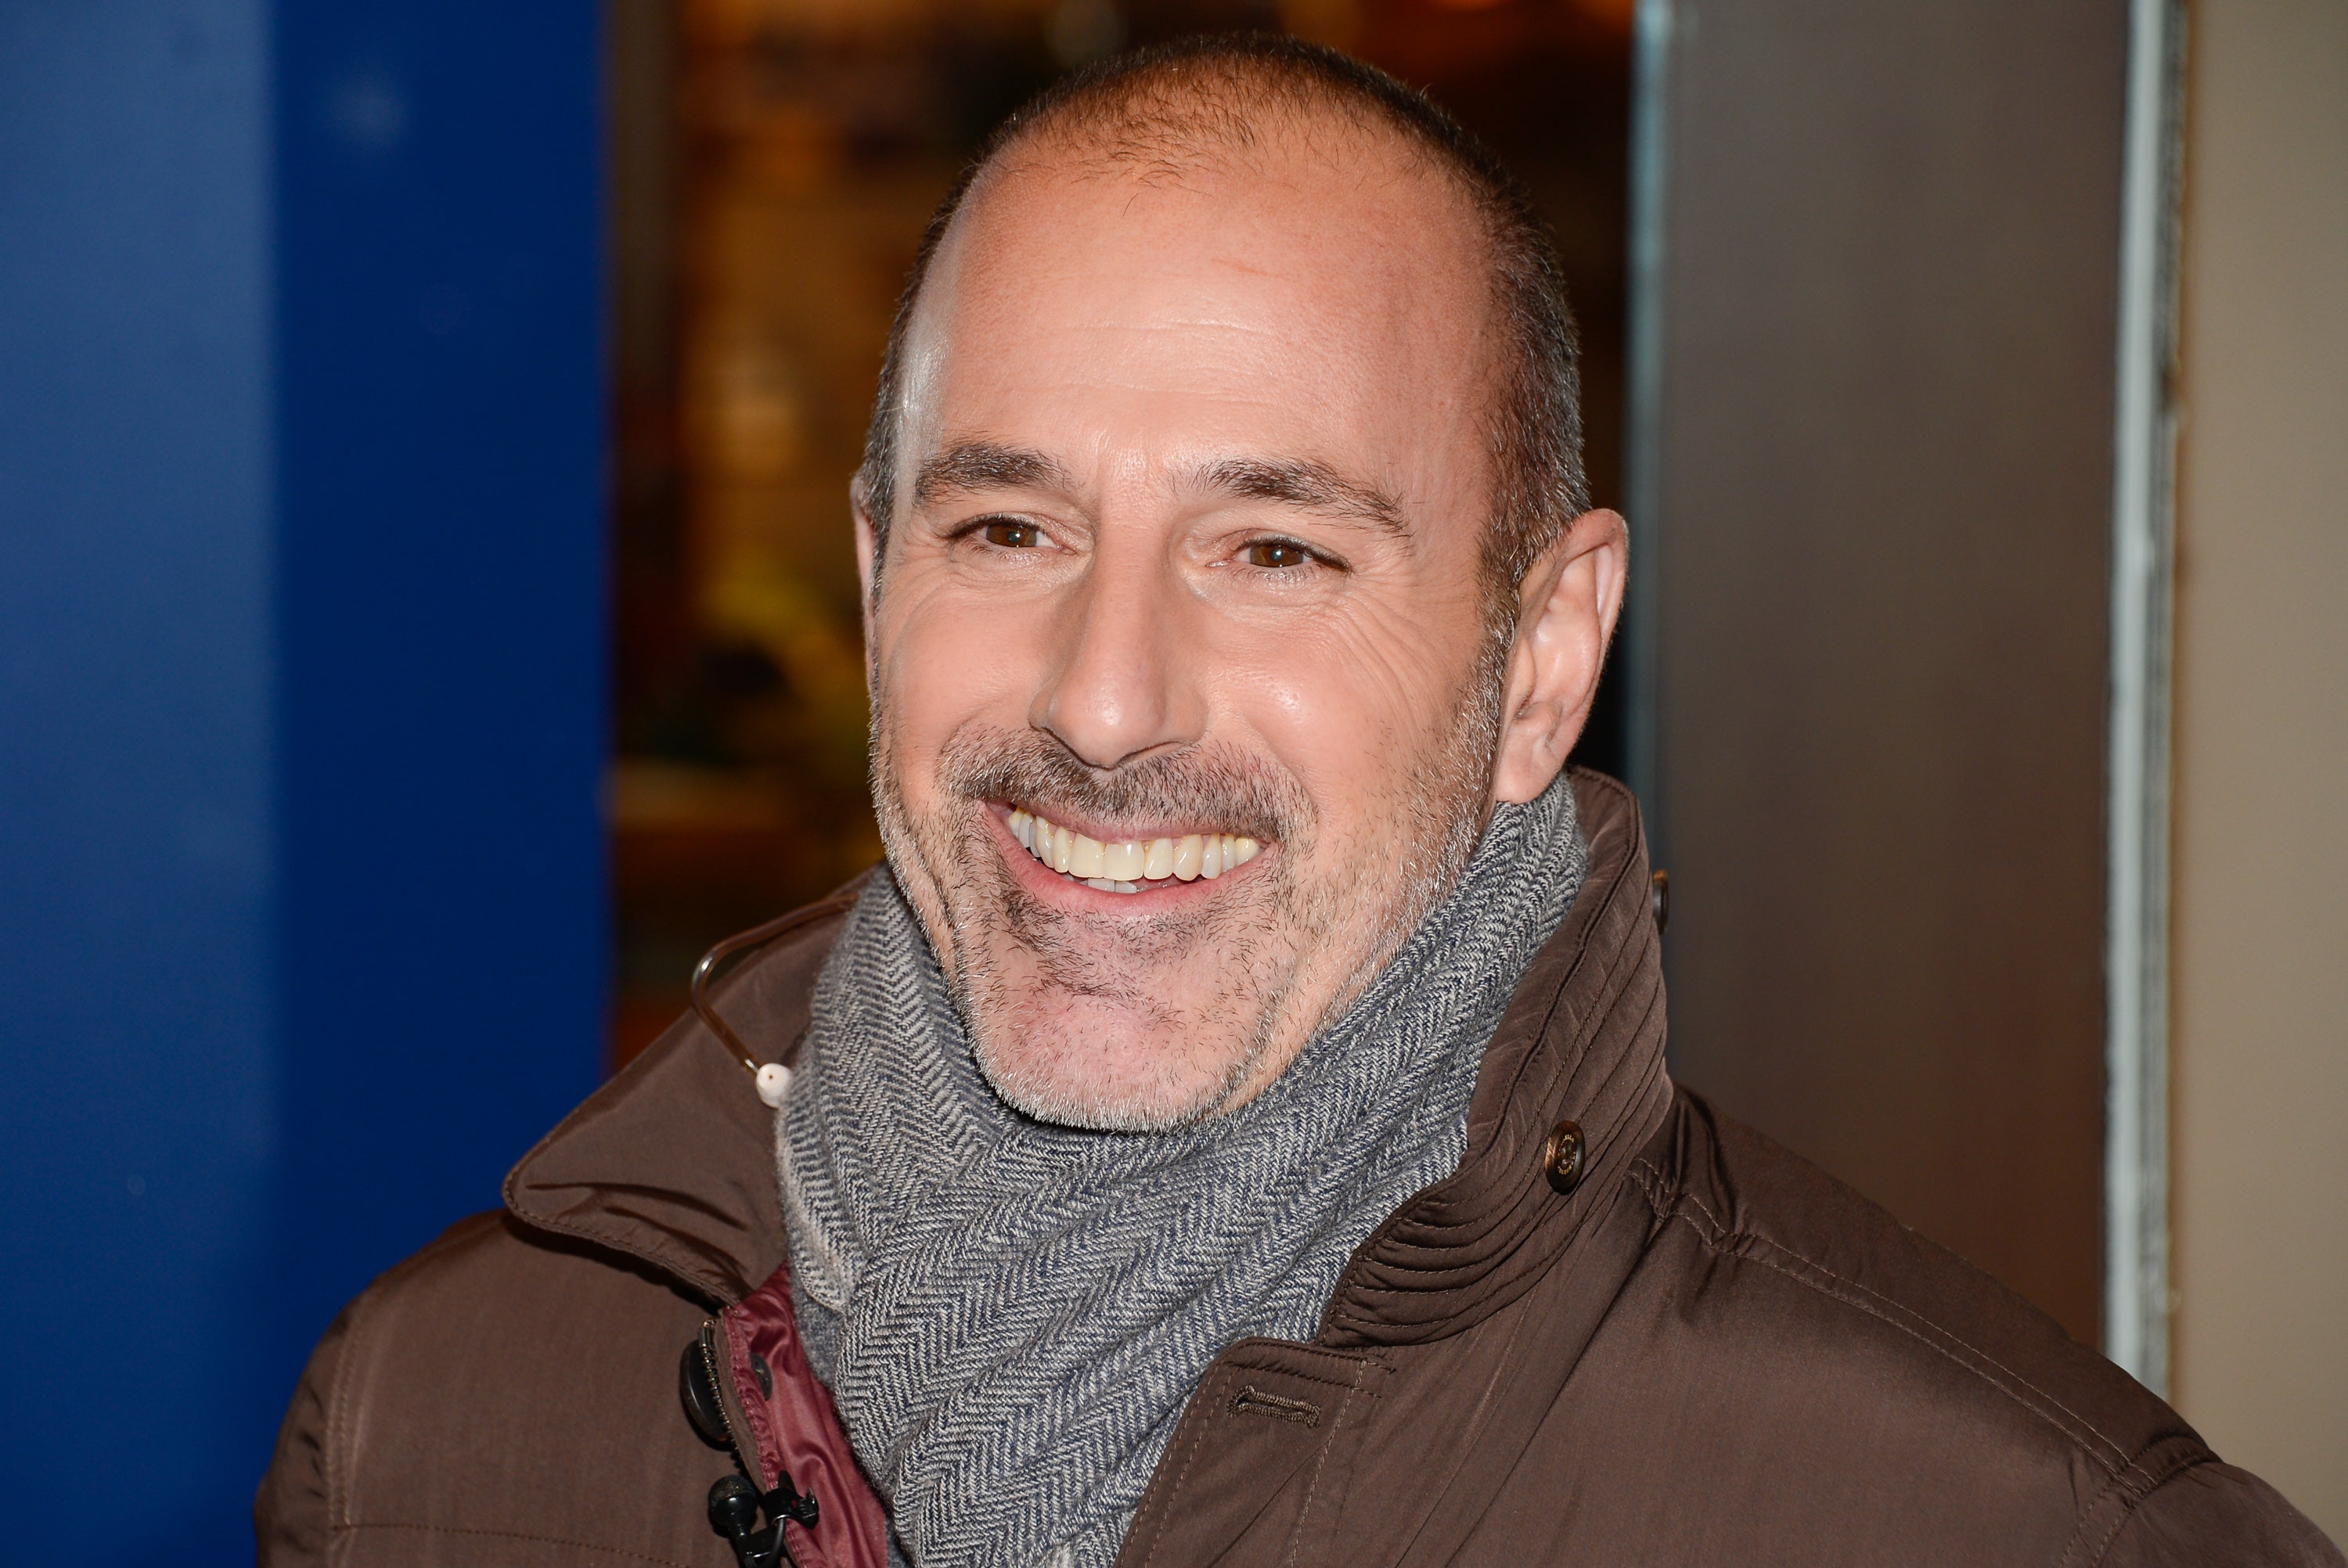 matt lauer wifematt lauer twitter, matt lauer wiki, matt lauer tv shows, matt lauer height, matt lauer tom cruise, matt lauer, matt lauer net worth, matt lauer salary, matt lauer 50 shades of grey, matt lauer ann curry, matt lauer one direction, matt lauer tom cruise interview, matt lauer wife, matt lauer family, matt lauer today show, matt lauer net worth forbes, matt lauer house, matt lauer marriage, matt lauer pranks ellen, matt lauer and natalie morales